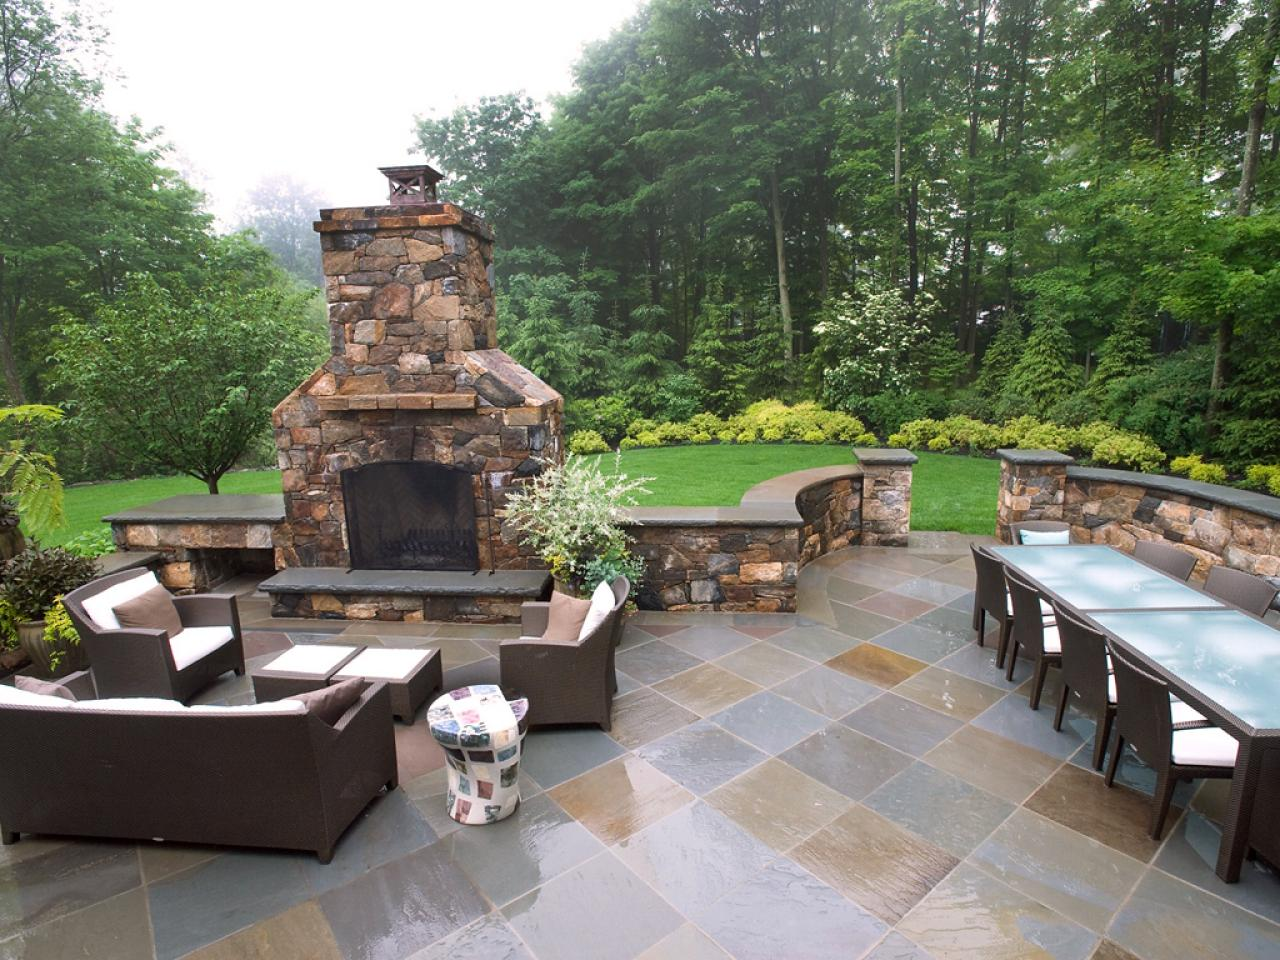 Patio Design & Installation-Flower Mound TX Professional Landscapers & Outdoor Living Designs-We offer Landscape Design, Outdoor Patios & Pergolas, Outdoor Living Spaces, Stonescapes, Residential & Commercial Landscaping, Irrigation Installation & Repairs, Drainage Systems, Landscape Lighting, Outdoor Living Spaces, Tree Service, Lawn Service, and more.